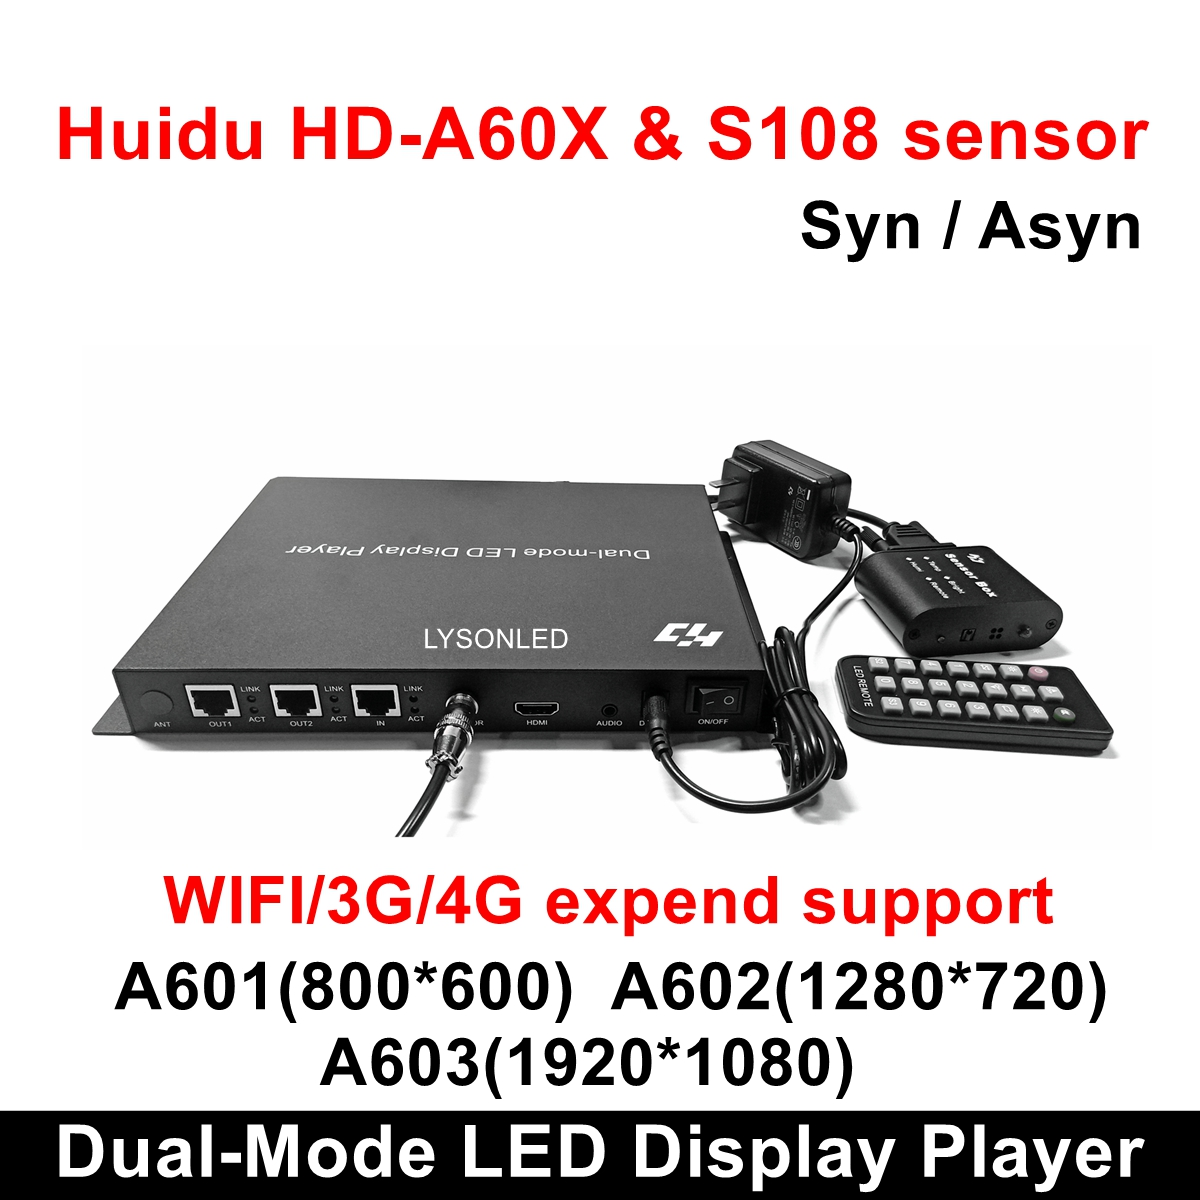 Huidu HD-A601 HD-A602 HD-A603 Full Color Sync-async Dual-mode LED Display Player with S108 Sensor Box,3G/4G/WiFi Expend SupportHuidu HD-A601 HD-A602 HD-A603 Full Color Sync-async Dual-mode LED Display Player with S108 Sensor Box,3G/4G/WiFi Expend Support